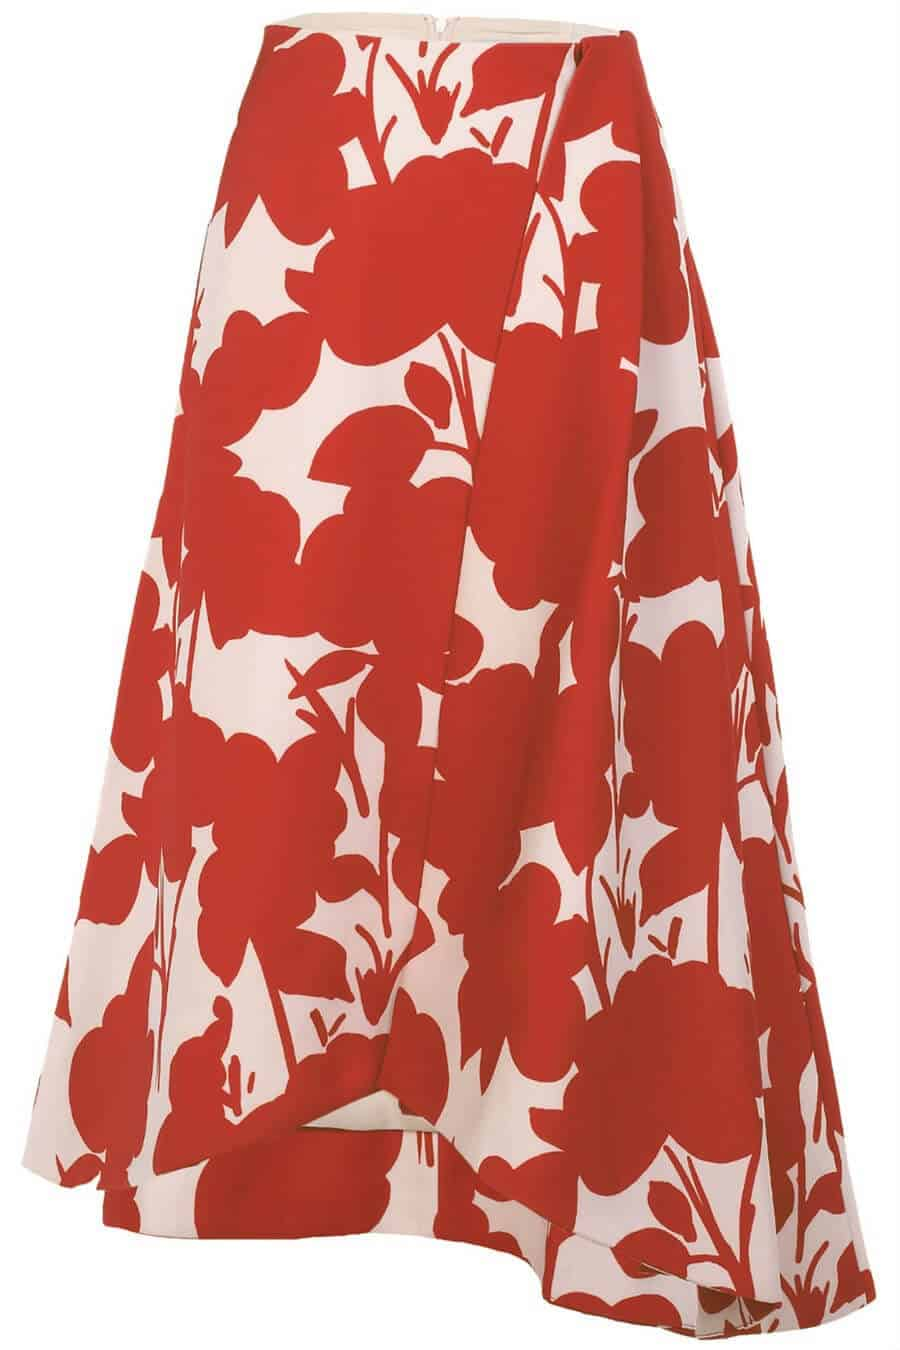 Style theory_keepsake-scribe-skirt-red-1_edit